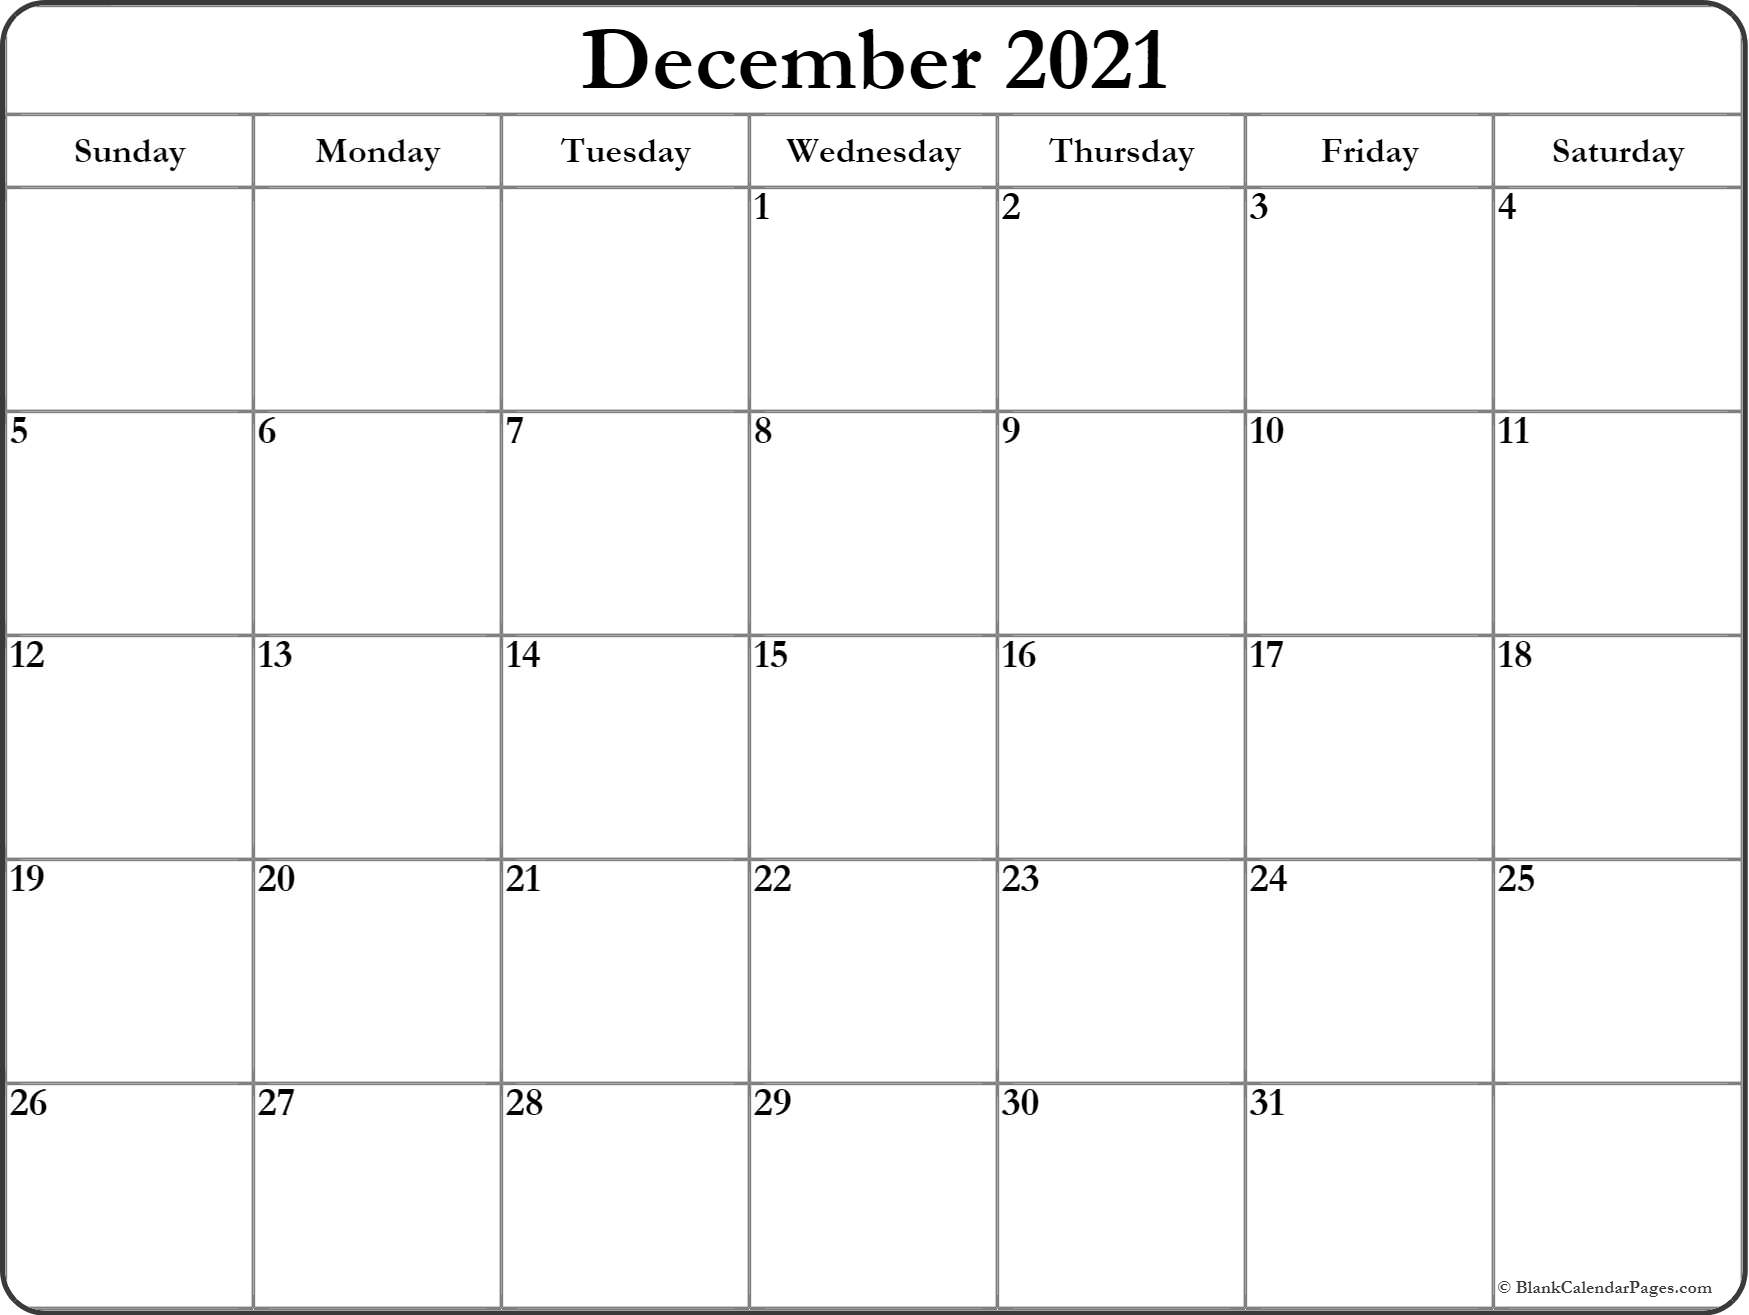 image regarding Printable Monthly Calendar December titled December 2019 calendar totally free printable month-to-month calendars